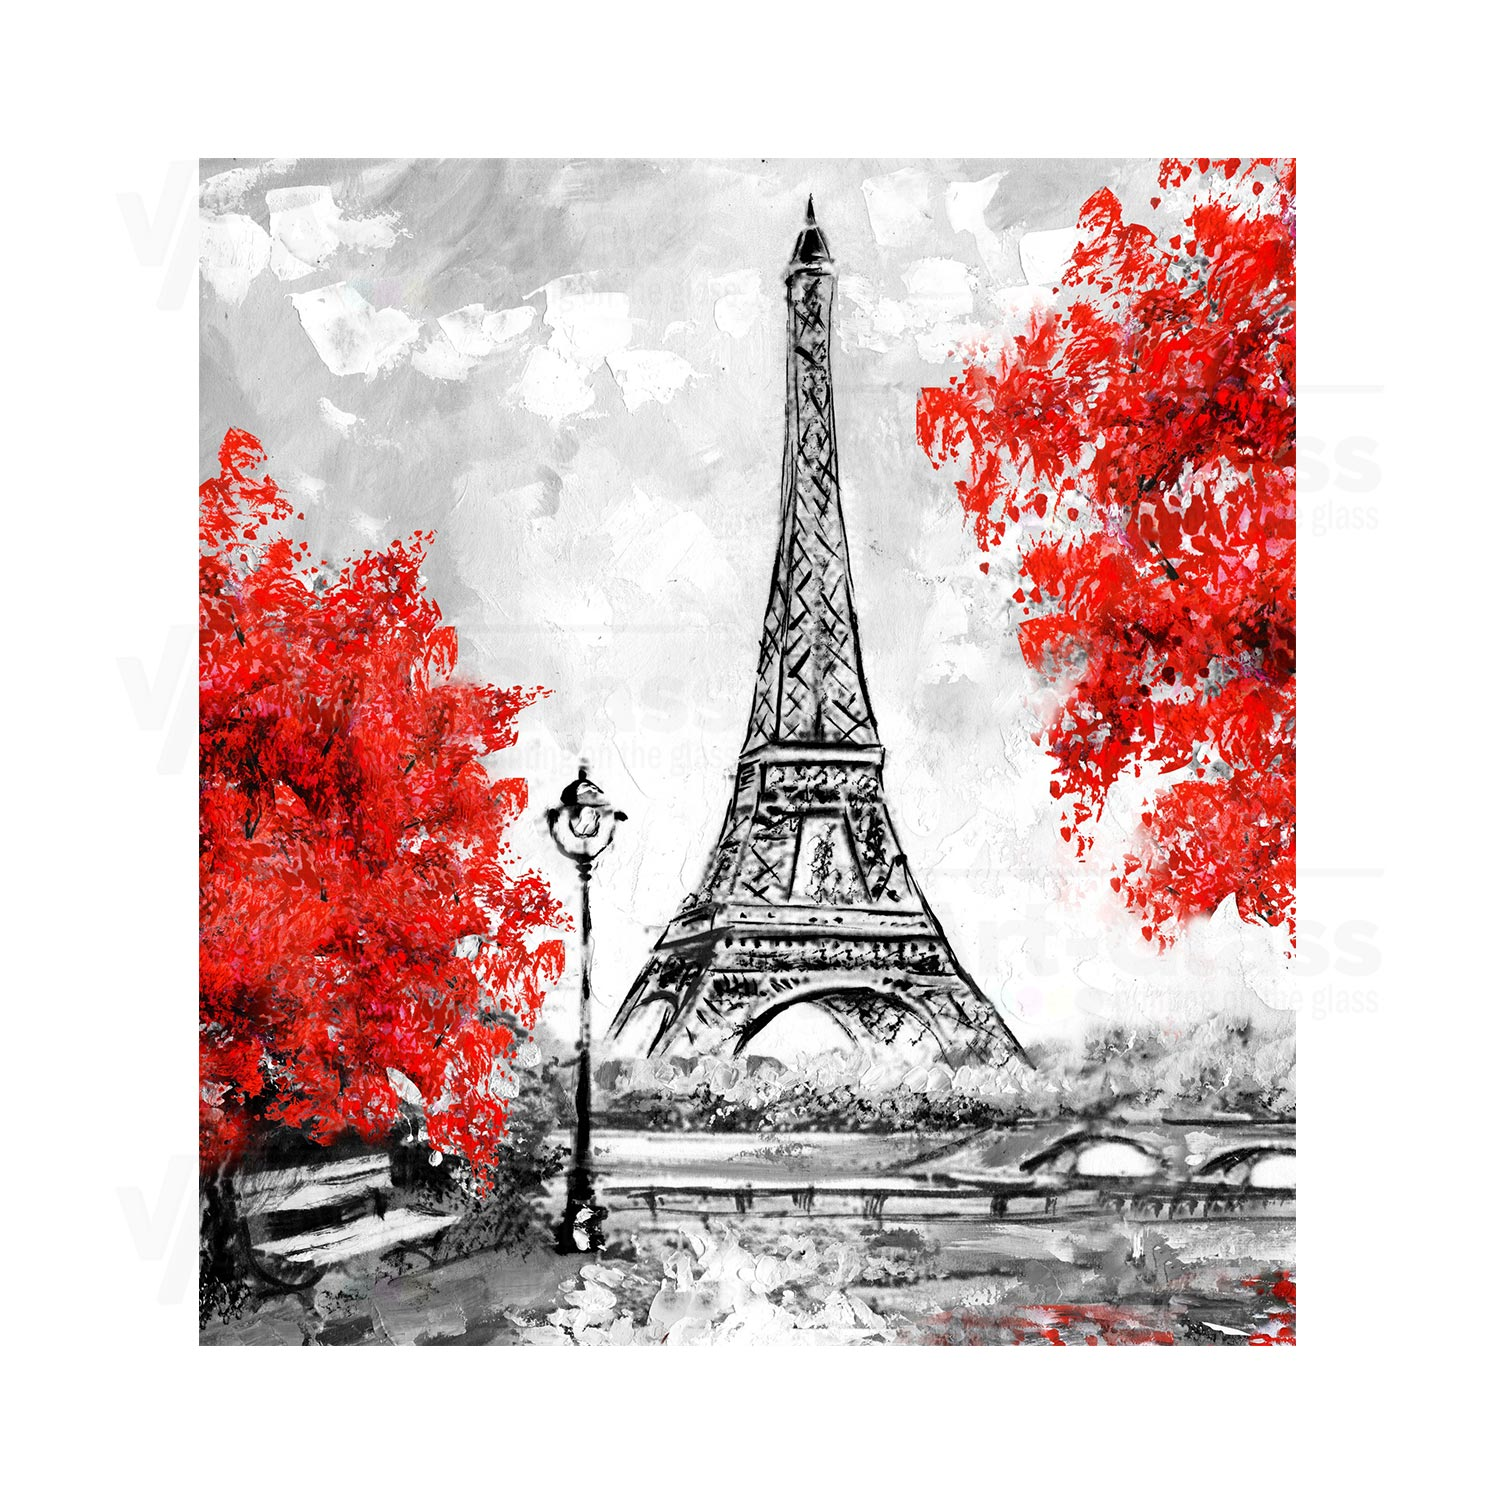 55cm Diameter Adjustable Height 60 75 Cm Coffee Table: Splashback With The Eiffel Tower Paris France ANY SIZE